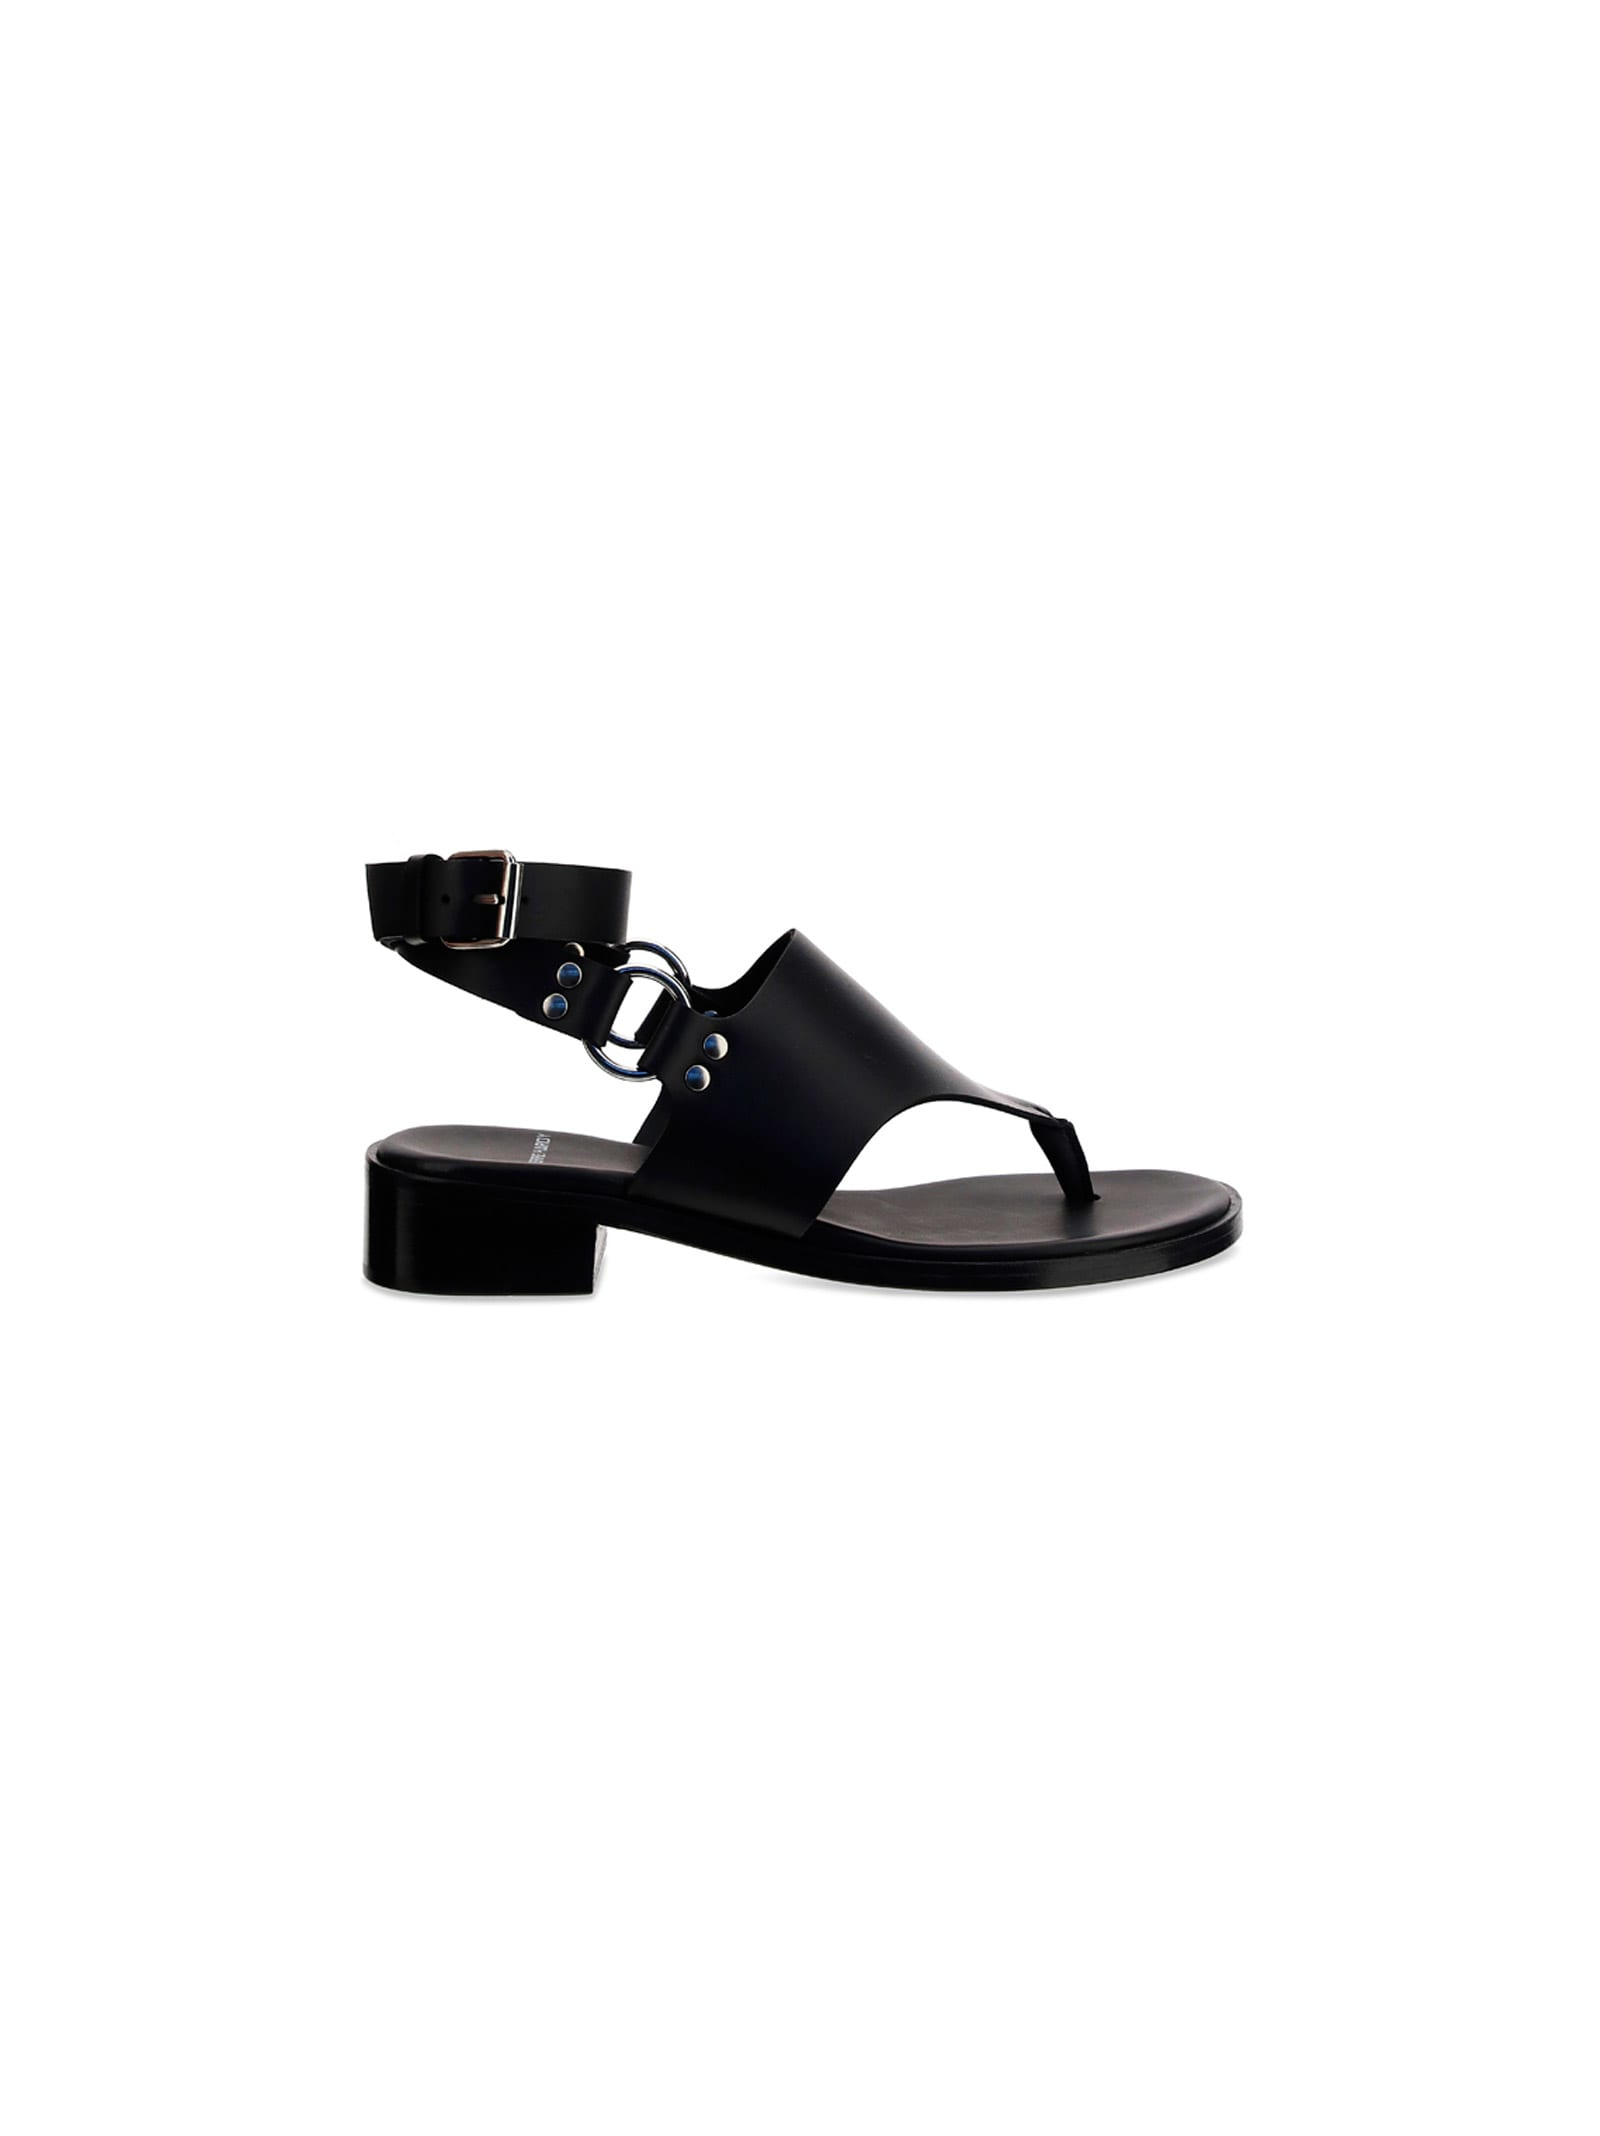 Pierre Hardy Leathers SANDALS